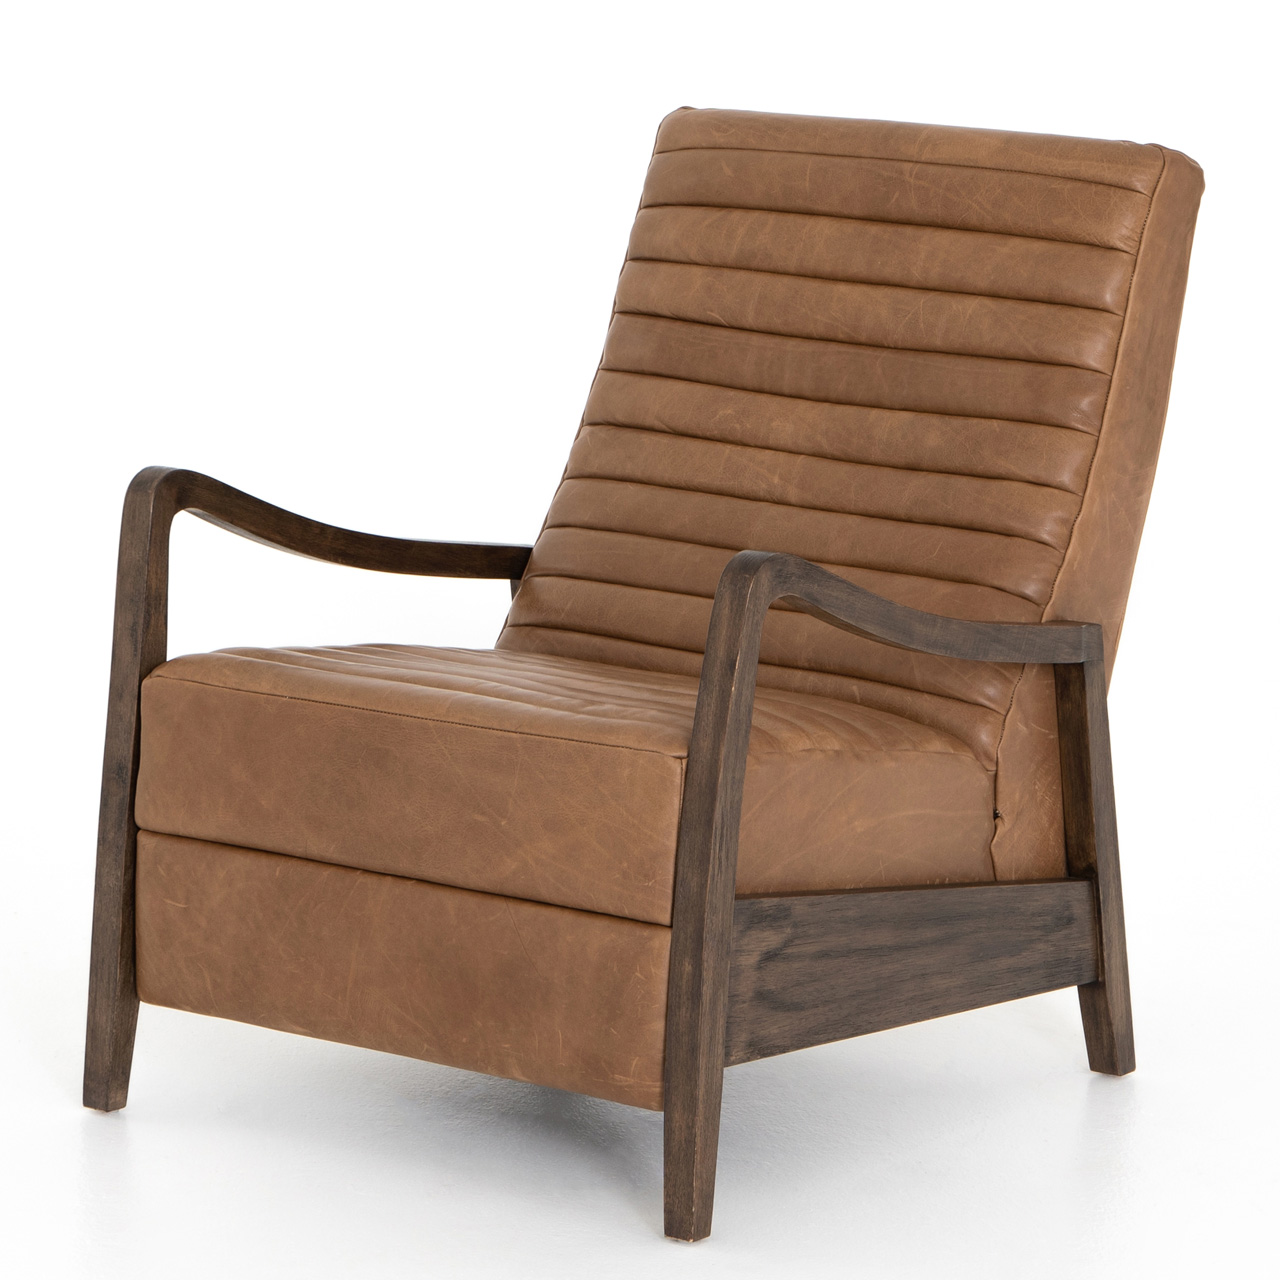 Amani Modern Classic Brown Leather Channel Tufted Recliner Arm Chair